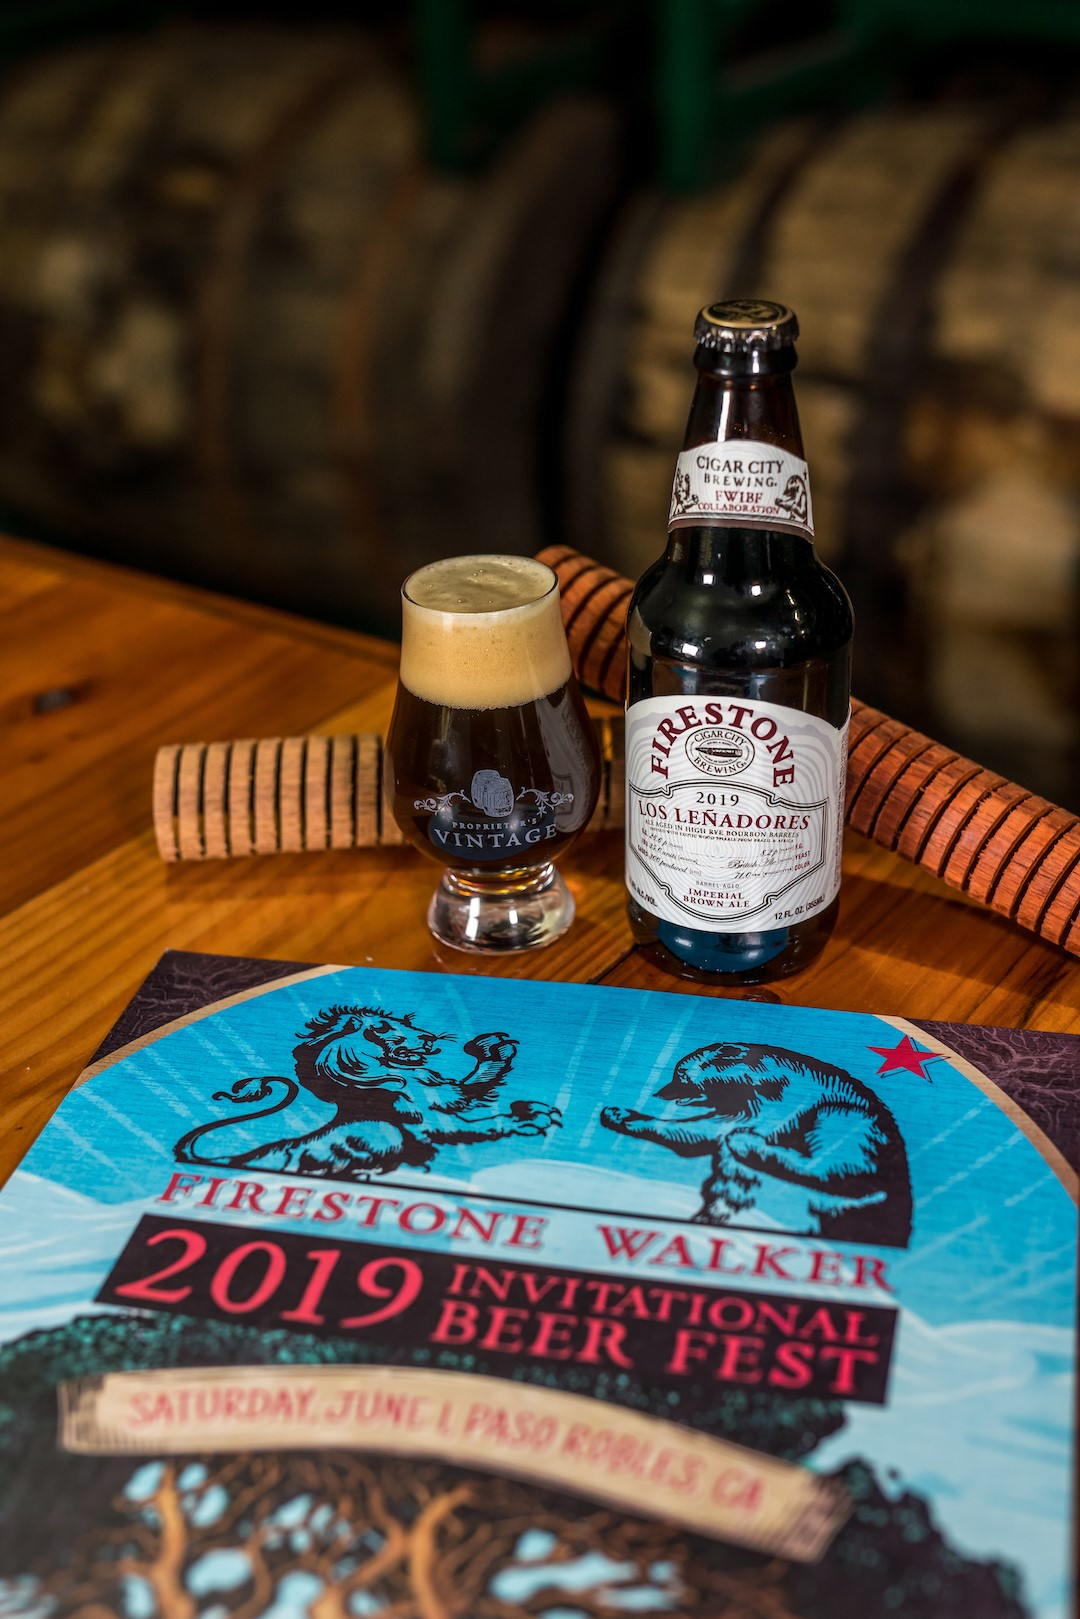 Firestone Walker and Cigar City collaborate on Los Leñadores for the 2019 Firestone Walker Invitational Beer Fest. (image courtesy of Firestone Walker Brewing)